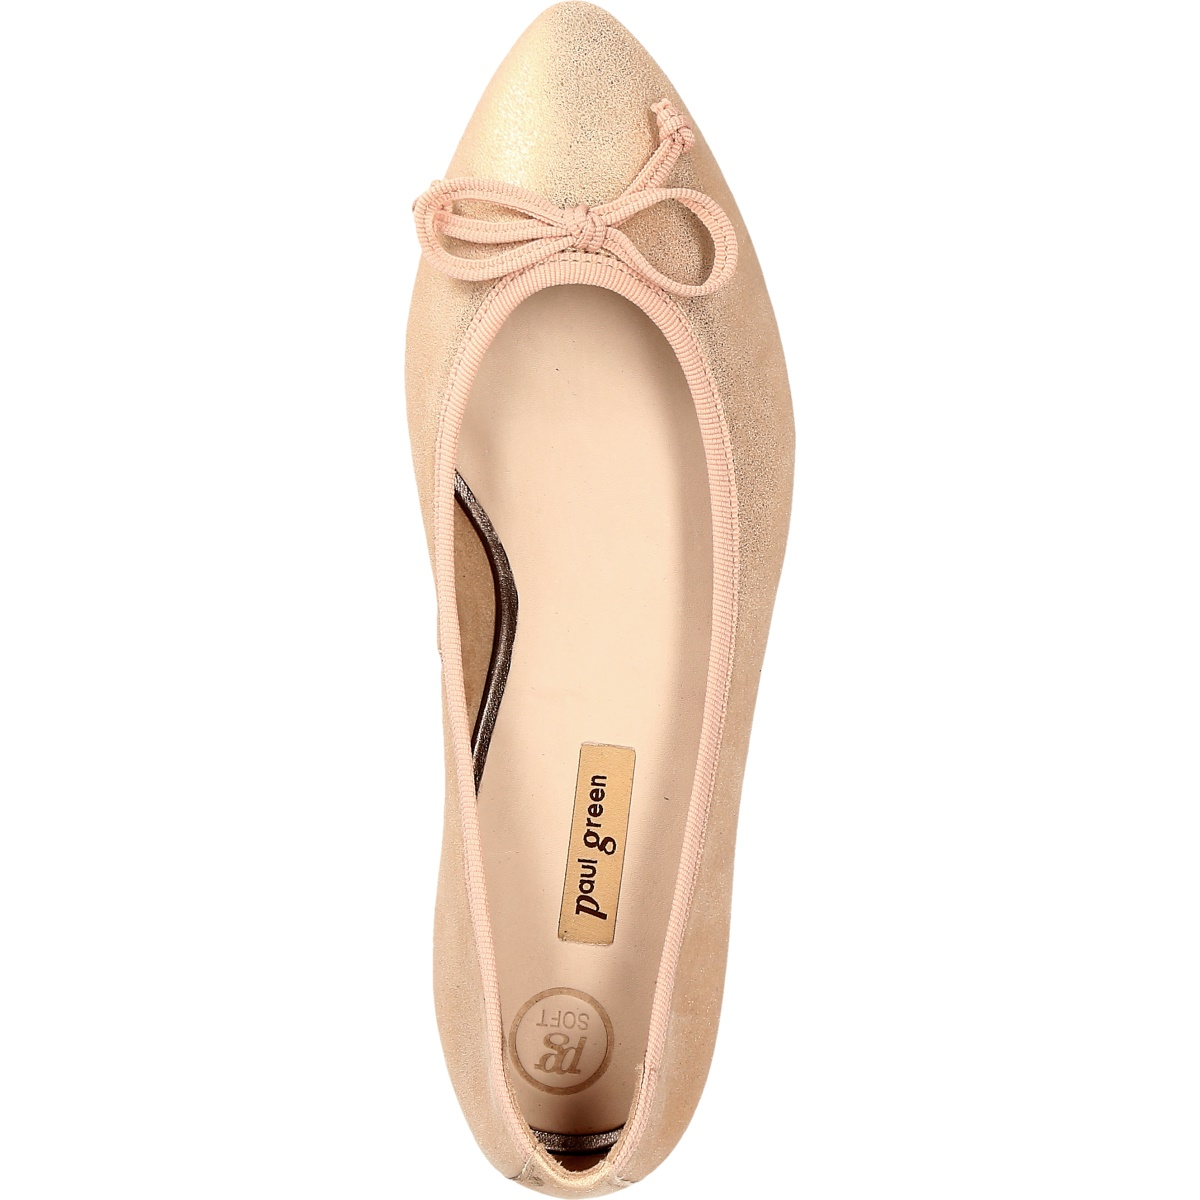 Paul Green 2480 034 Women's shoes Ballerinas buy shoes at